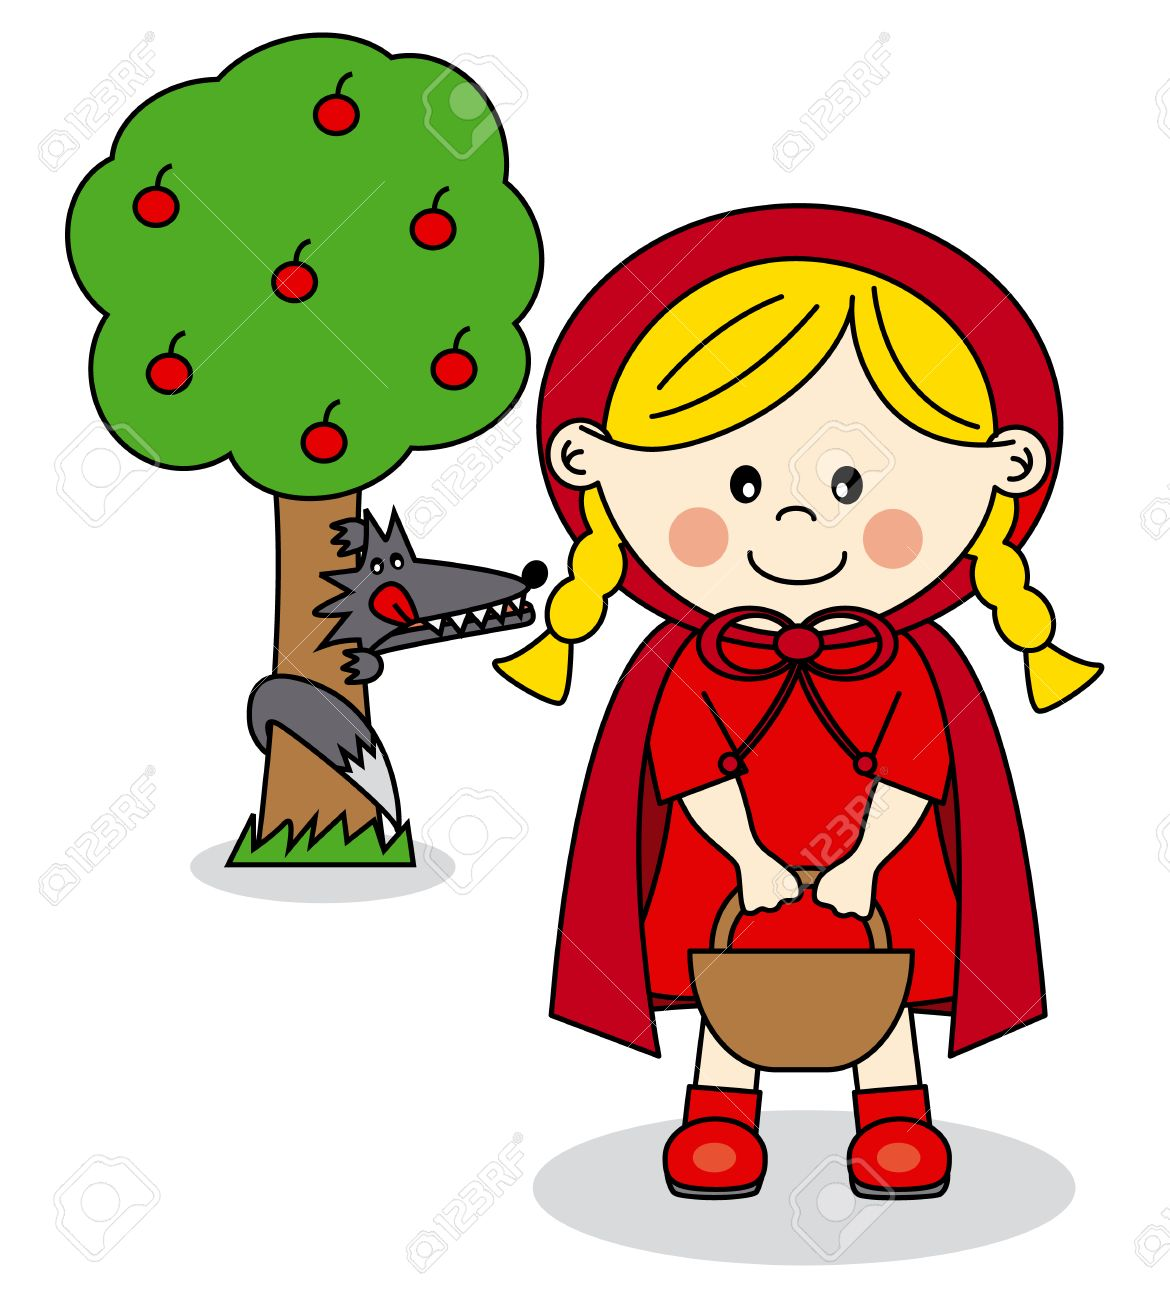 children story little red riding hood and the big bad wolf royalty rh 123rf com little red riding hood clipart pictures red riding hood characters clipart